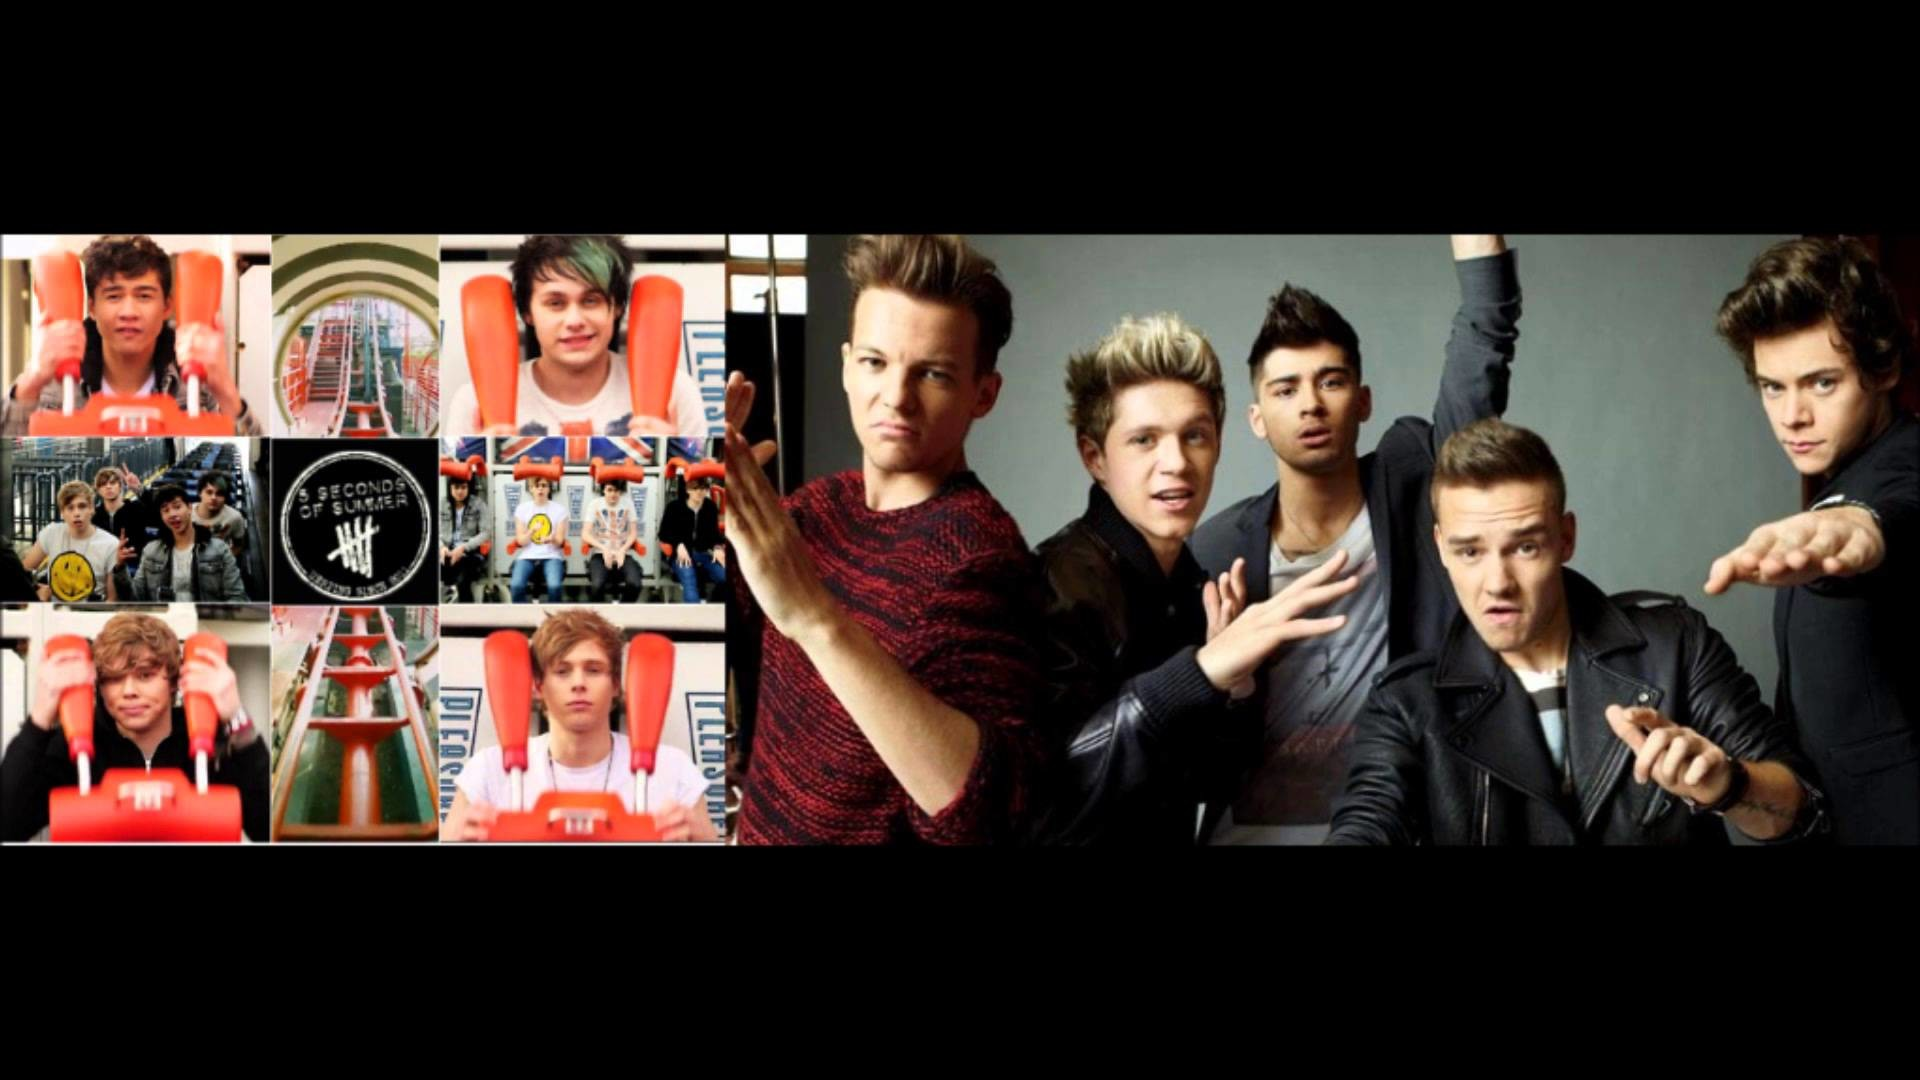 5 Sos Wallpapers (68+ images) 5sos And One Direction Wallpaper